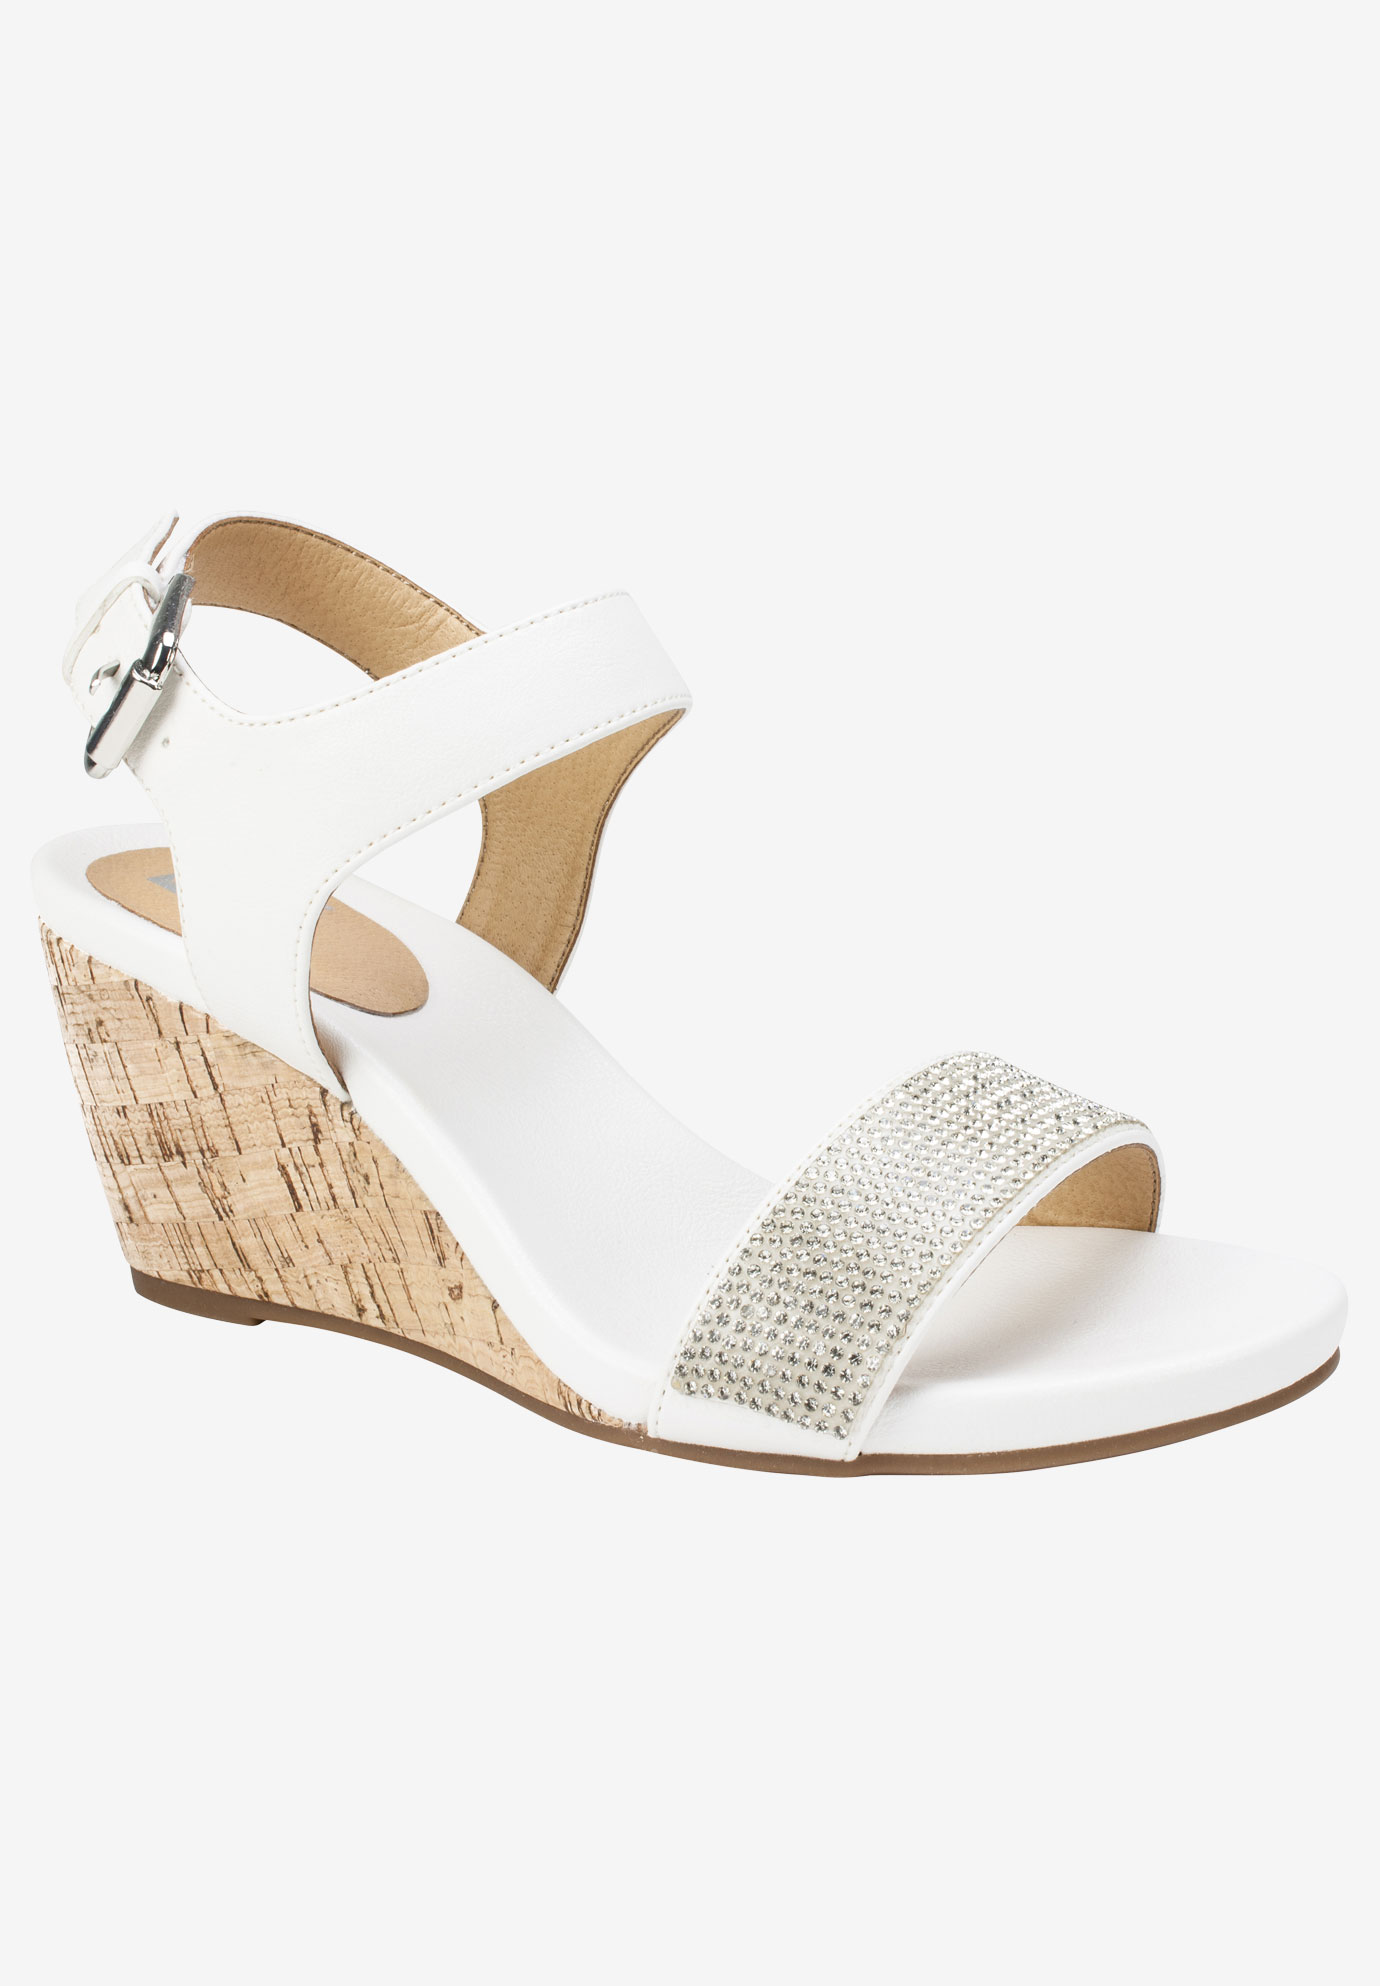 Phillis Sandal by White Mountain,